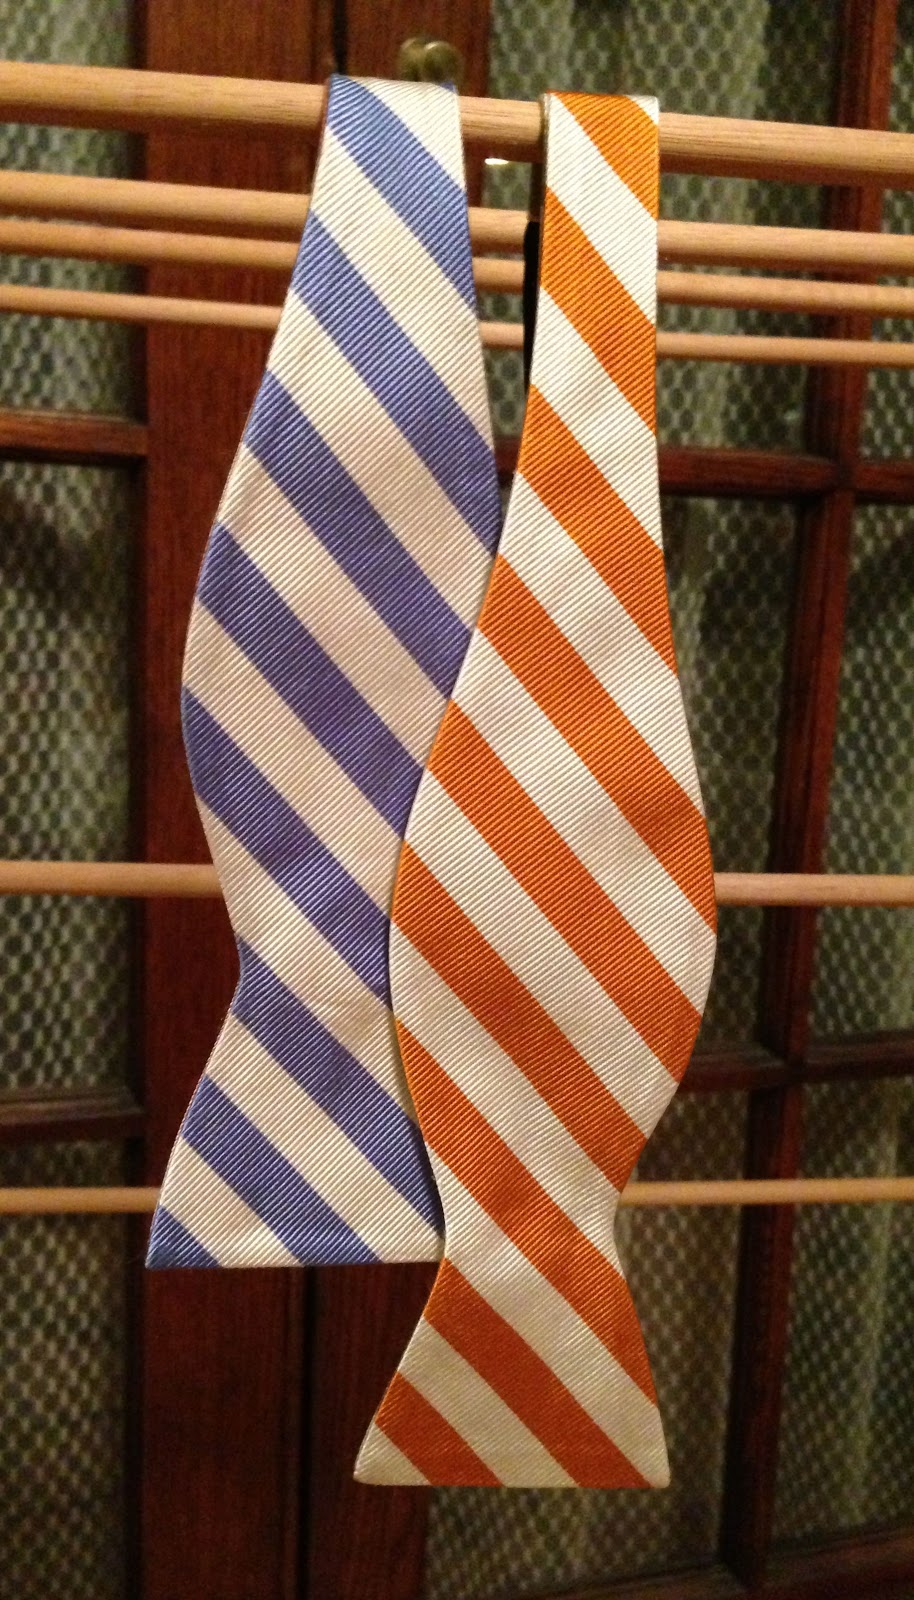 The First Two Color Panels Of The Jos A Banks Tie Are A Blue And White  Striped Section And An Orange And White Striped Section